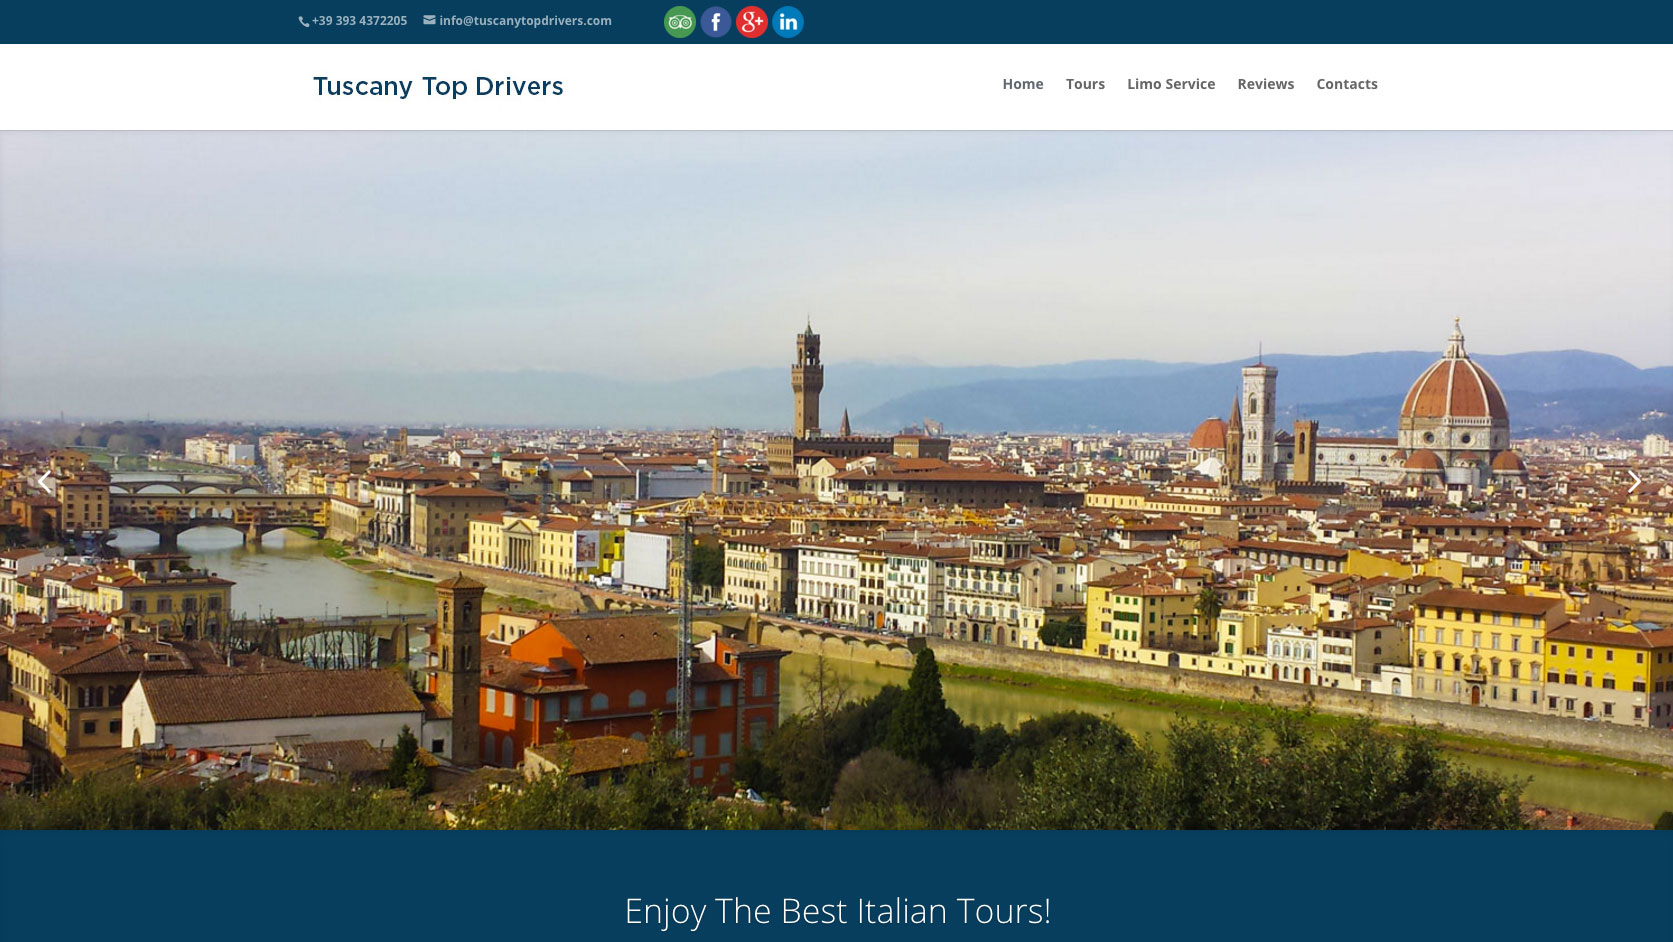 Tuscany Top Drivers Homepage